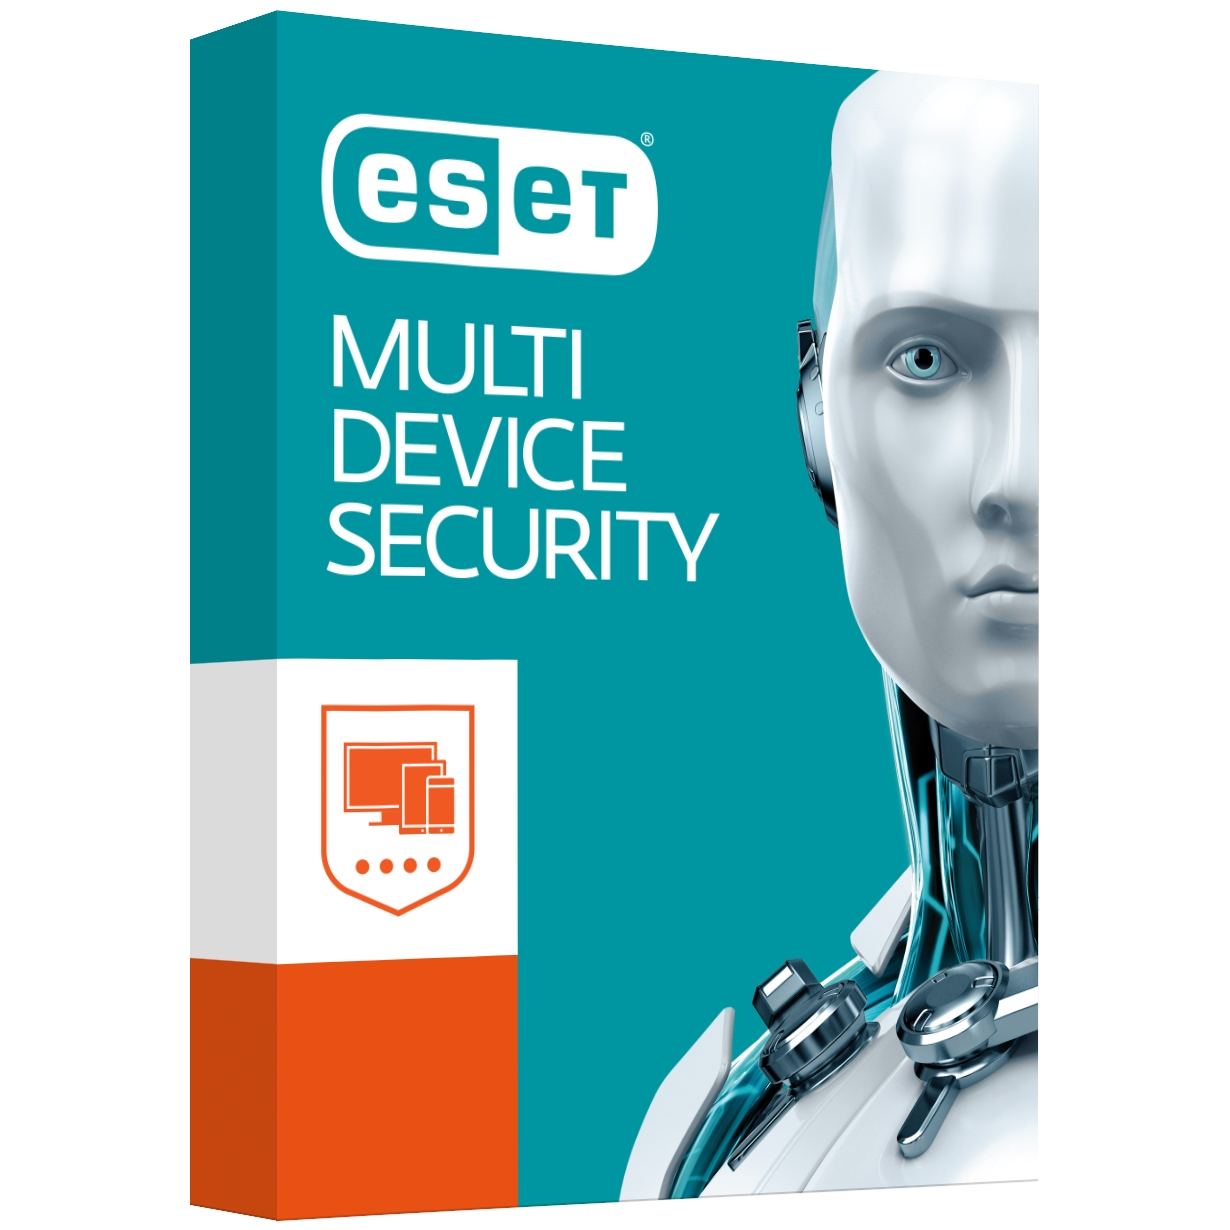 ESET NOD32 MULTI DEVICE / İNTERNET SECURITY V10 3 KULLANICI 1 YIL